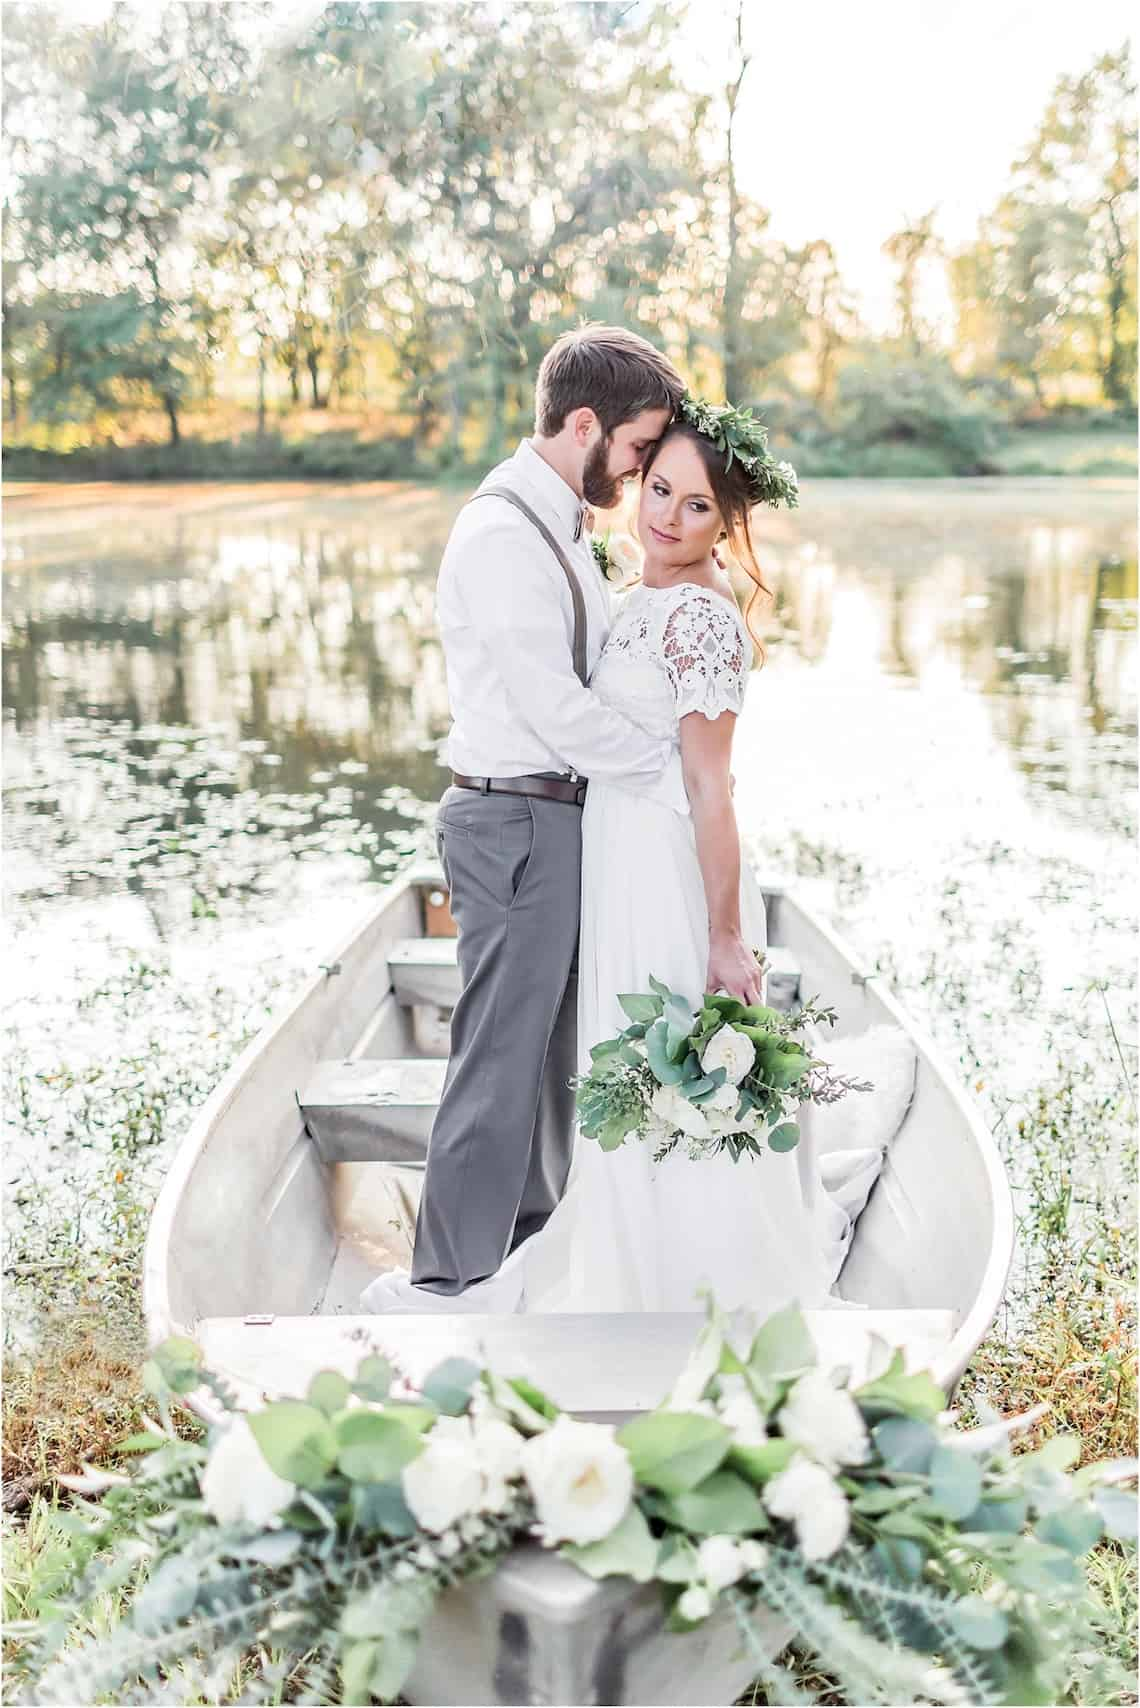 Wedding Photos in a Boat on a Lake